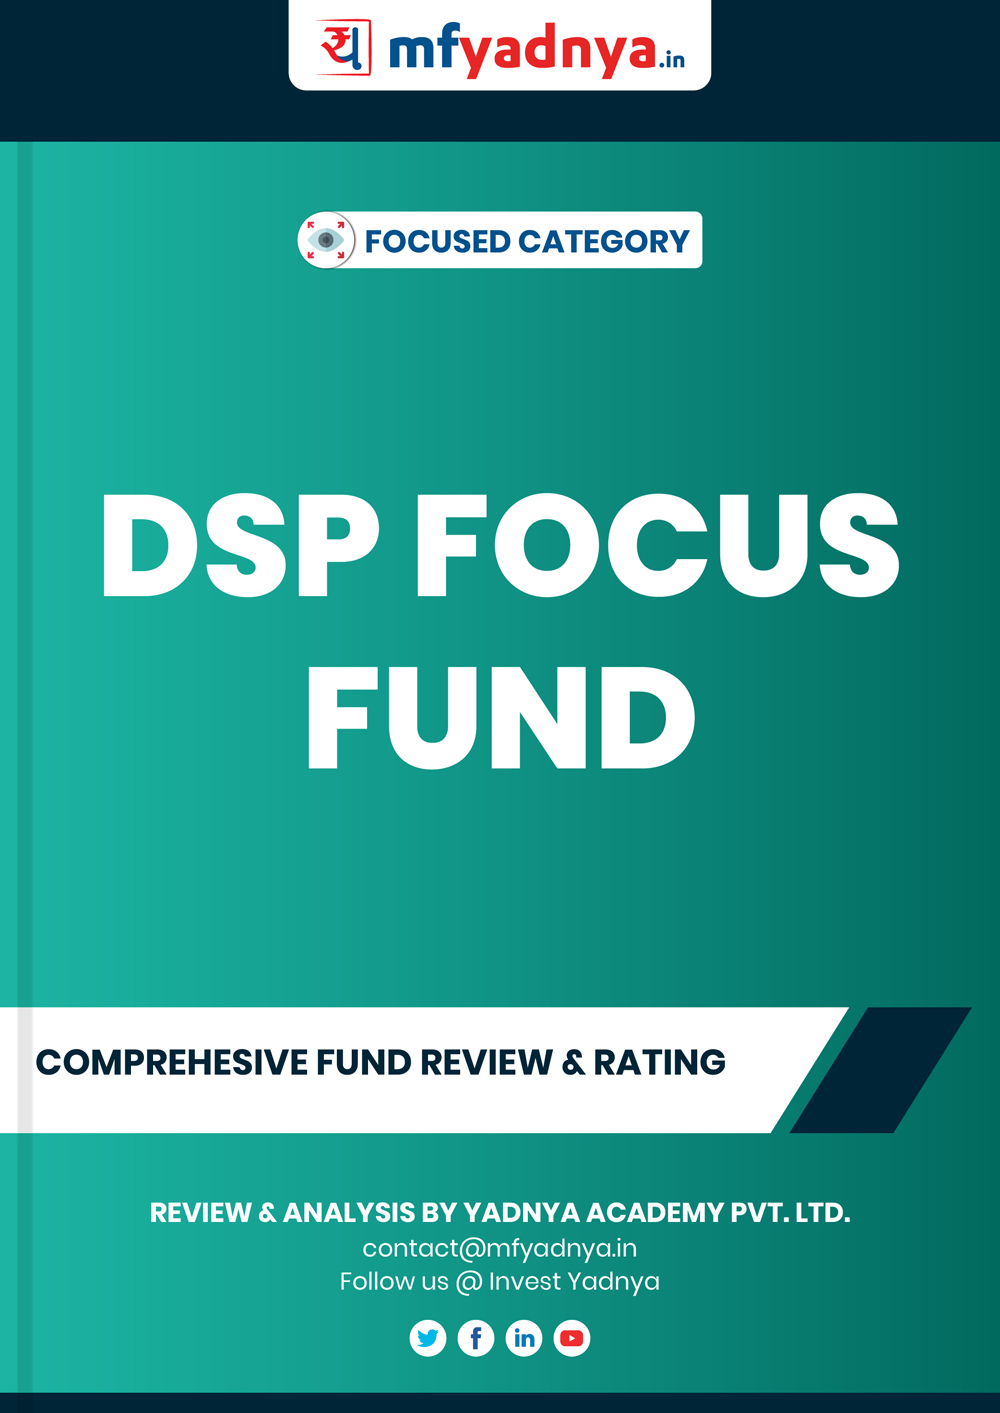 Focused Category Review - DSP Focus Fund. Most Comprehensive and detailed MF review based on Yadnya's proprietary methodology of Green, Yellow & Red Star. Detailed Analysis & Review based on May 31st, 2020 data. Review also gives you the historical trend of the performance which will show fund's performance consistency.